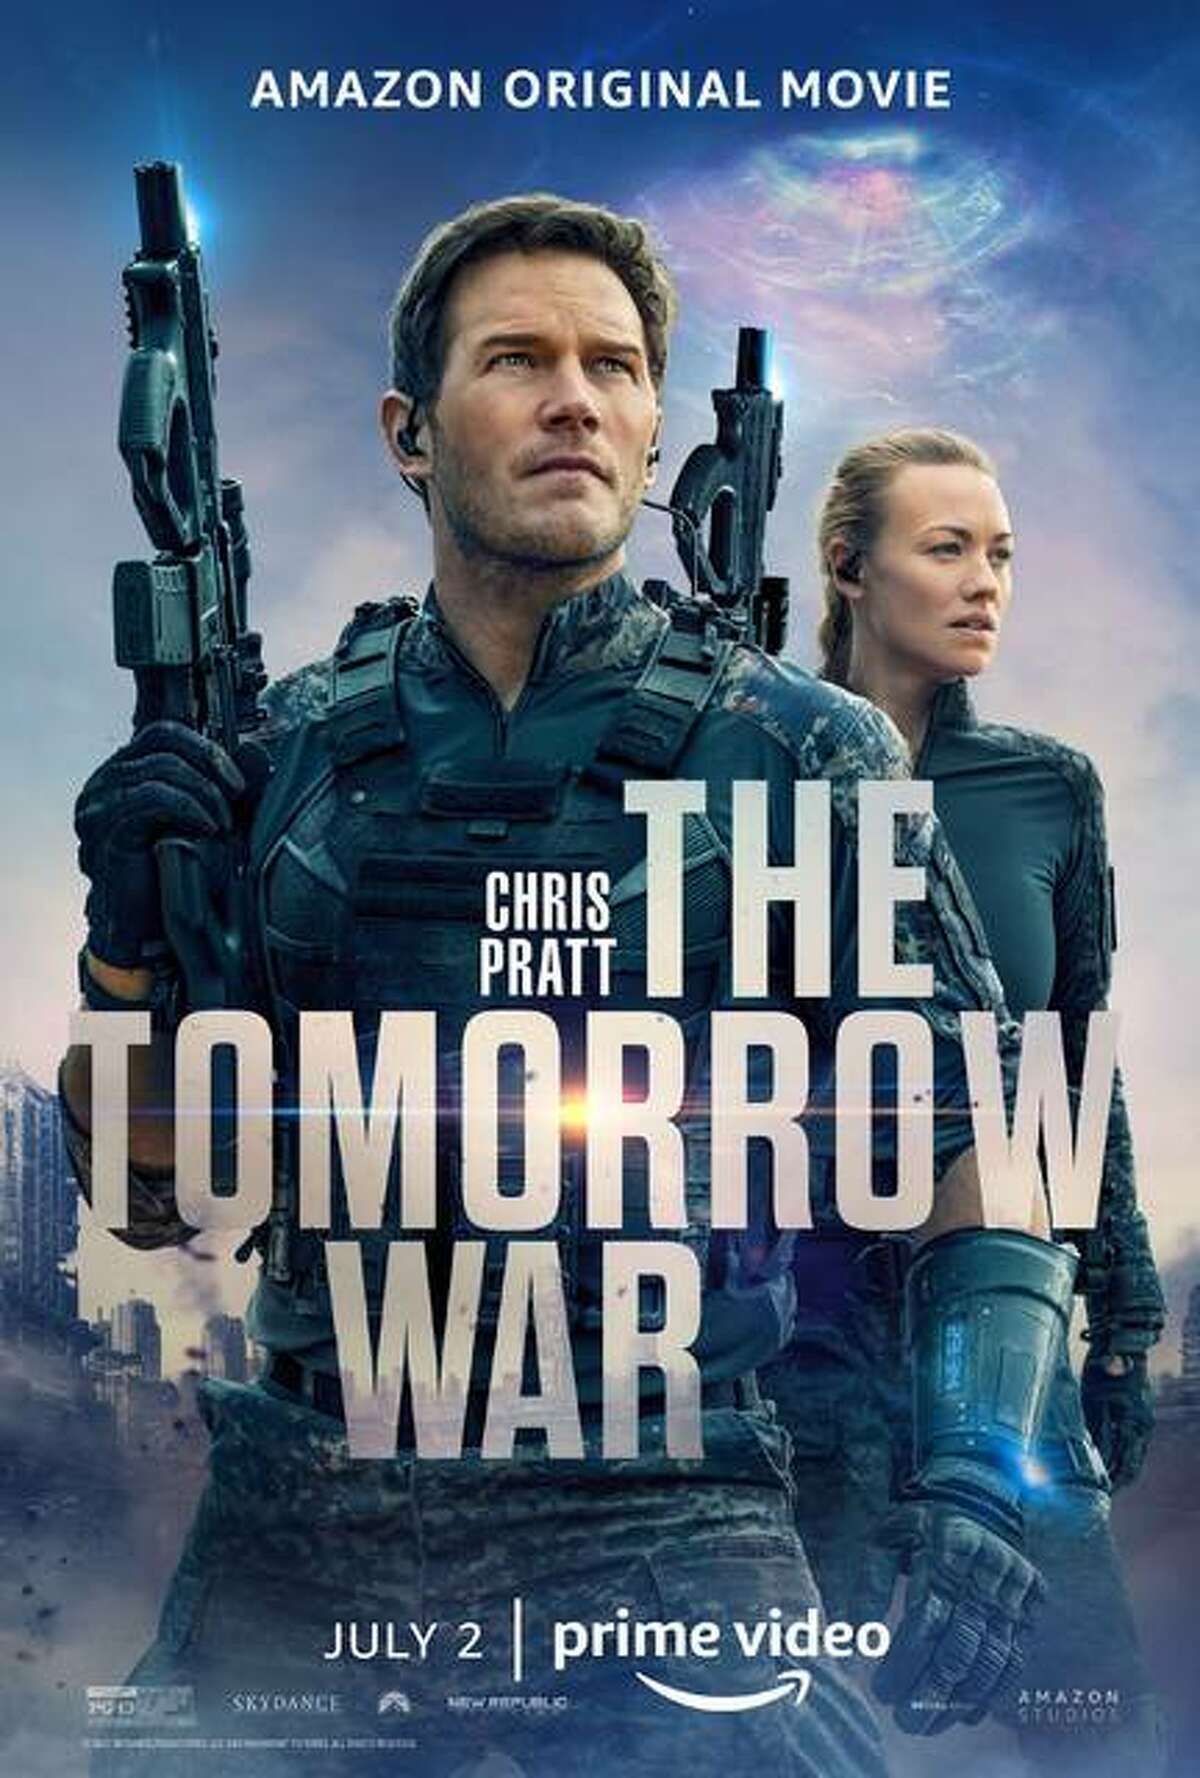 """Chris Pratt teams up with an all-star task in a desperate quest to rewrite history and save the planet in """"The Tomorrow War"""" now showing on Amazon Prime."""